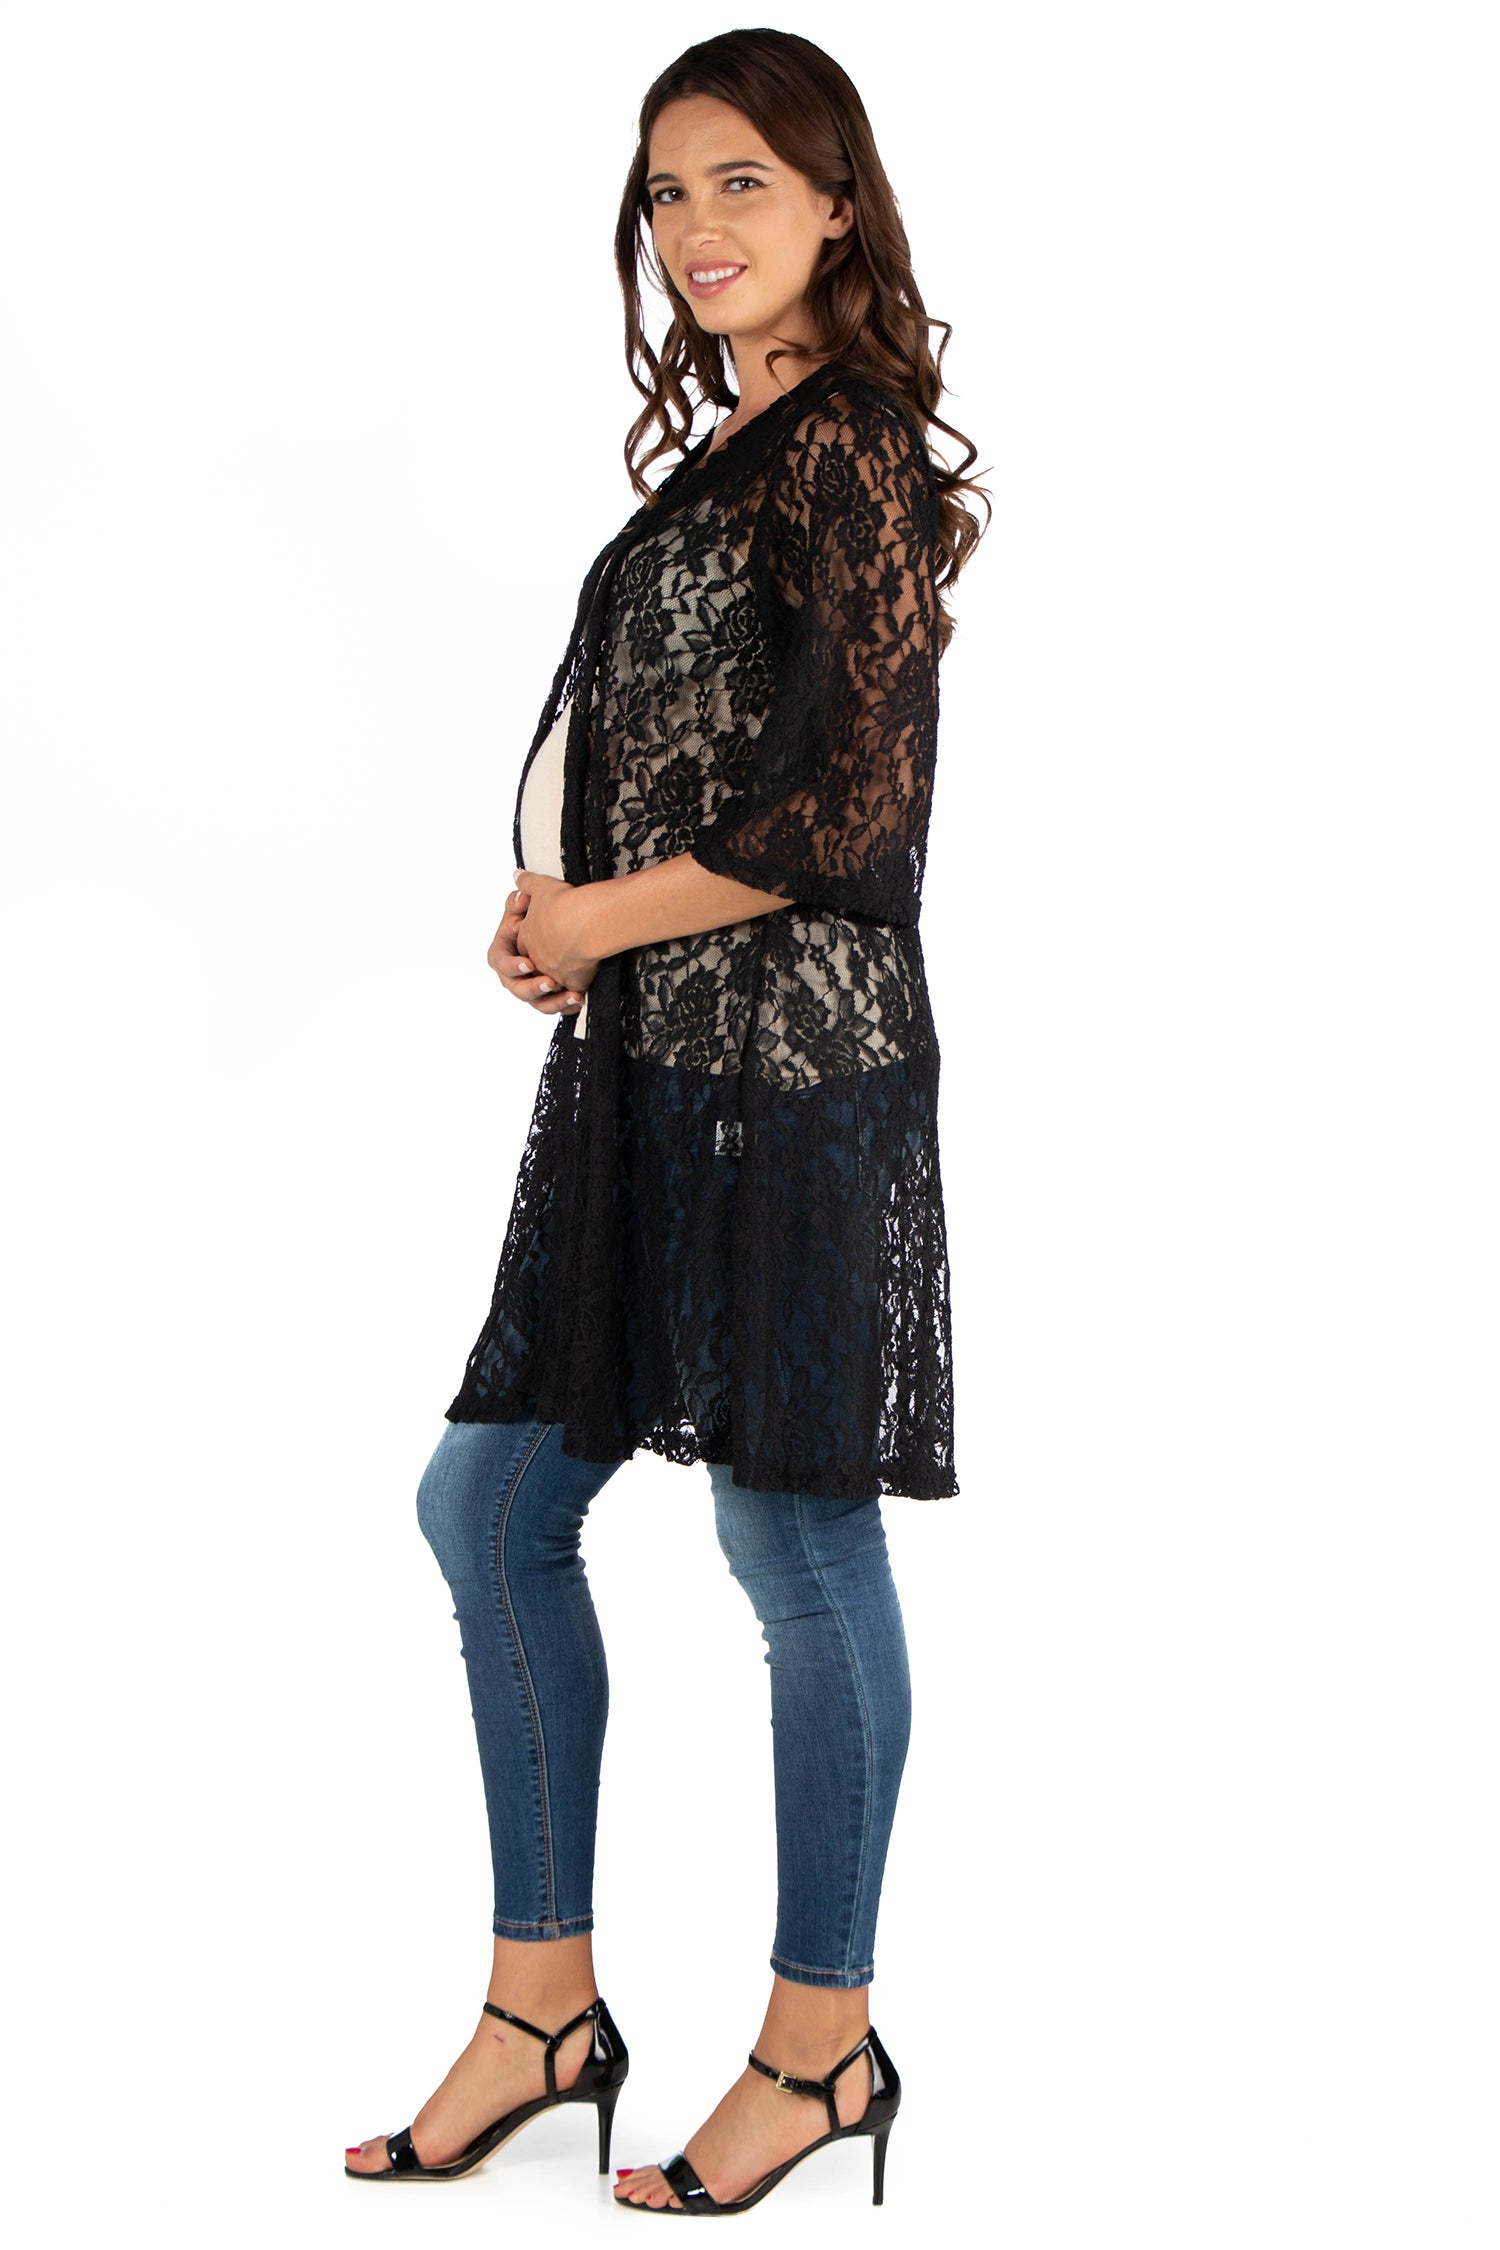 24seven Comfort Apparel Knee Length Sheer Black Lace Maternity Cardigan-SHRUGS-24Seven Comfort Apparel-BLACK-1X-24/7 Comfort Apparel